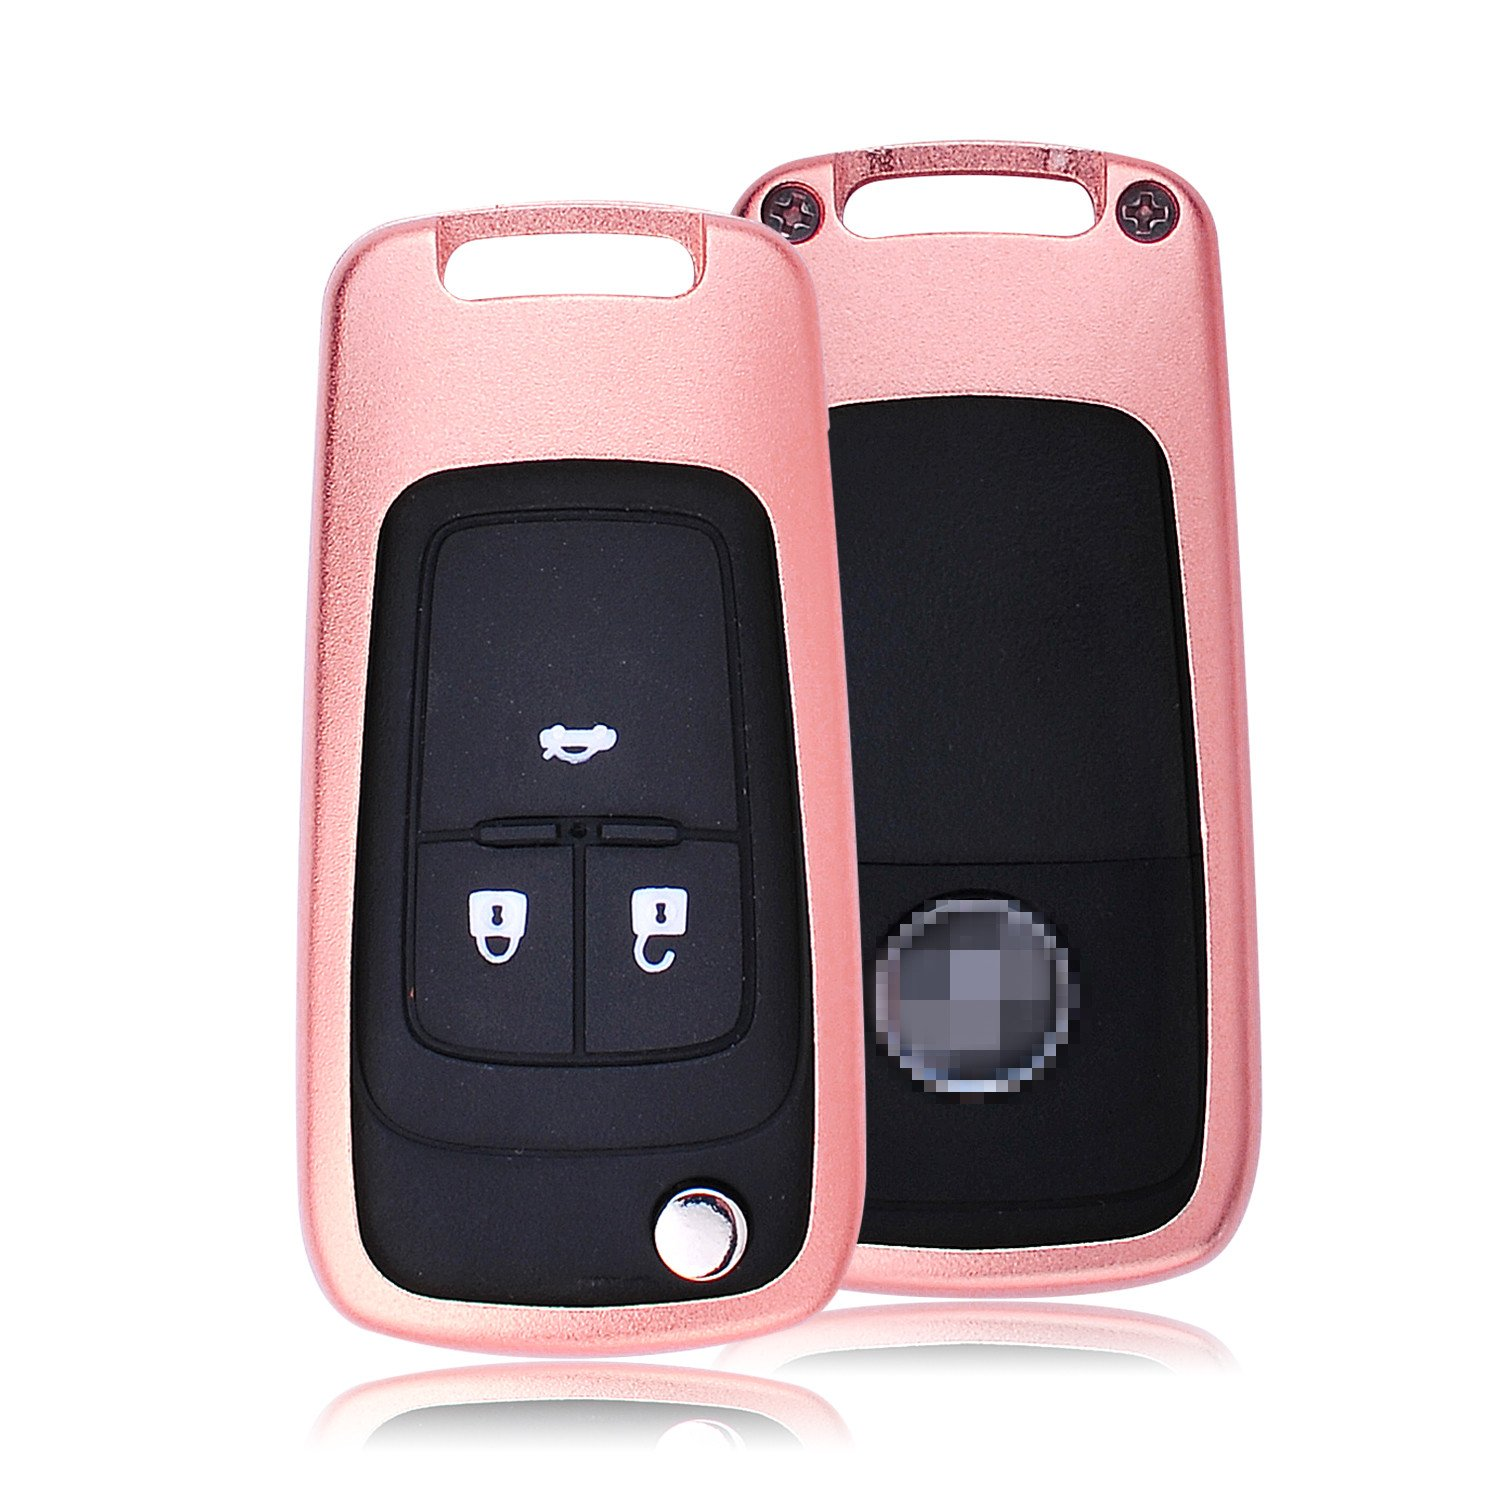 Cool Protector Case Skin Fits Buick Folding Flip Car Key Aircraft Aluminum Key Fob Cover For Buick Remote Key Unisex Leather Key Fob Keychain for Men Key Fob Holder for Women Rose Gold MissBlue